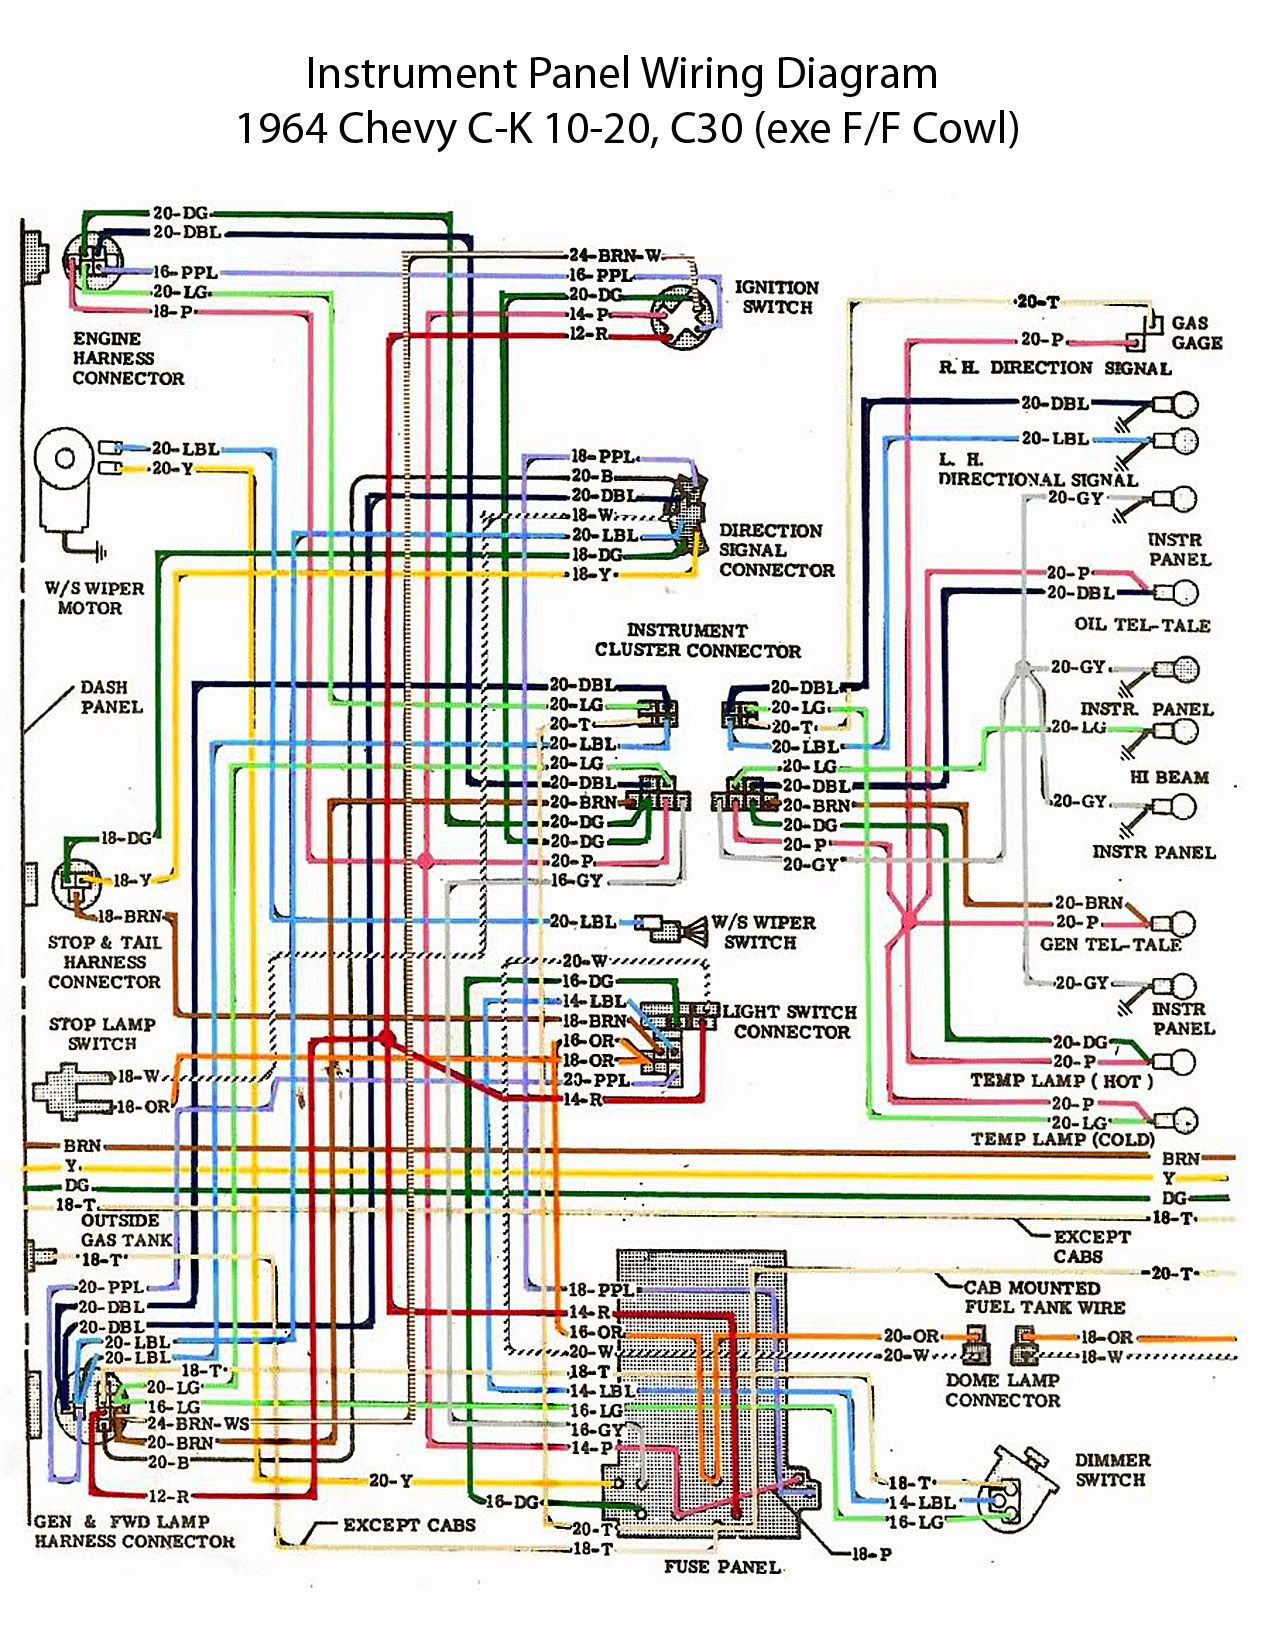 1960 Chevy Wiring Diagram | Online Wiring Diagram on toyota wiring harness, k10 wiring harness, monte carlo wiring harness, b2 wiring harness, k20 wiring harness, el camino wiring harness, gmc truck wiring harness, silverado wiring harness, c3 wiring harness, chevy wiring harness, cavalier wiring harness, mercury wiring harness, hhr wiring harness, dodge wiring harness, nova wiring harness, corvette wiring harness, e2 wiring harness, k1500 wiring harness, c12 wiring harness, camaro wiring harness,